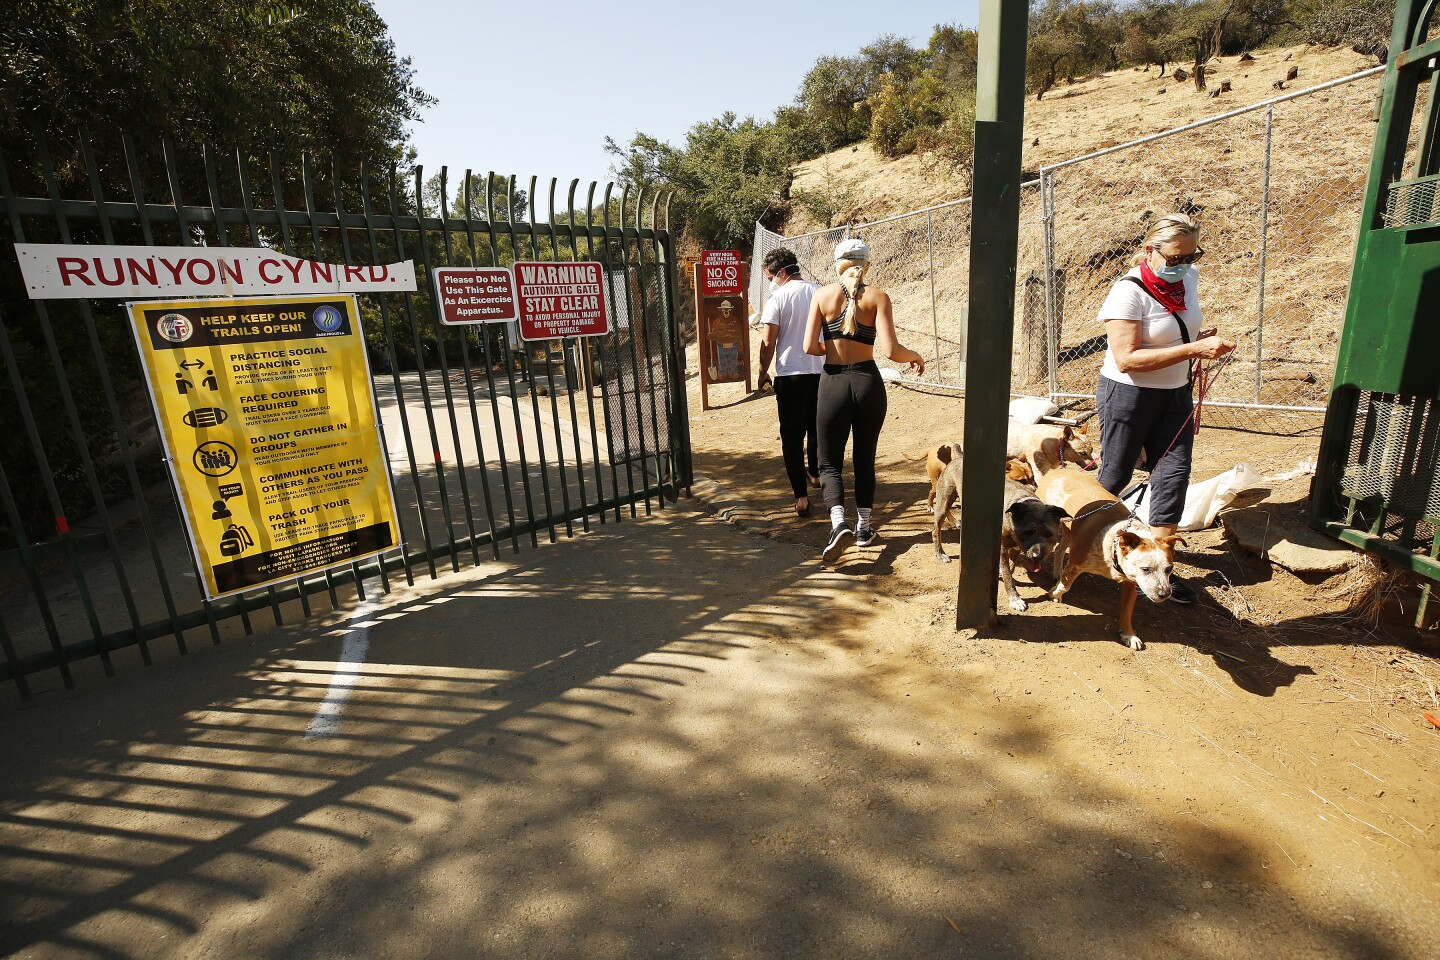 LOS ANGELES, CA - MAY 27: Hikers enter Runyon Canyon Park at the North entrance on Mulholland Drive in the Hollywood hills on Wednesday morning as the popular park has been reopened and is closely monitored by L.A. City person new under COVID-19 safety guidelines. Visitors are still required to wear masks at the park and people are instructed to walk in lanes with directional arrows trying to maximize social distancing. Hollywood on Wednesday, May 27, 2020 in Los Angeles, CA. (Al Seib / Los Angeles Times)